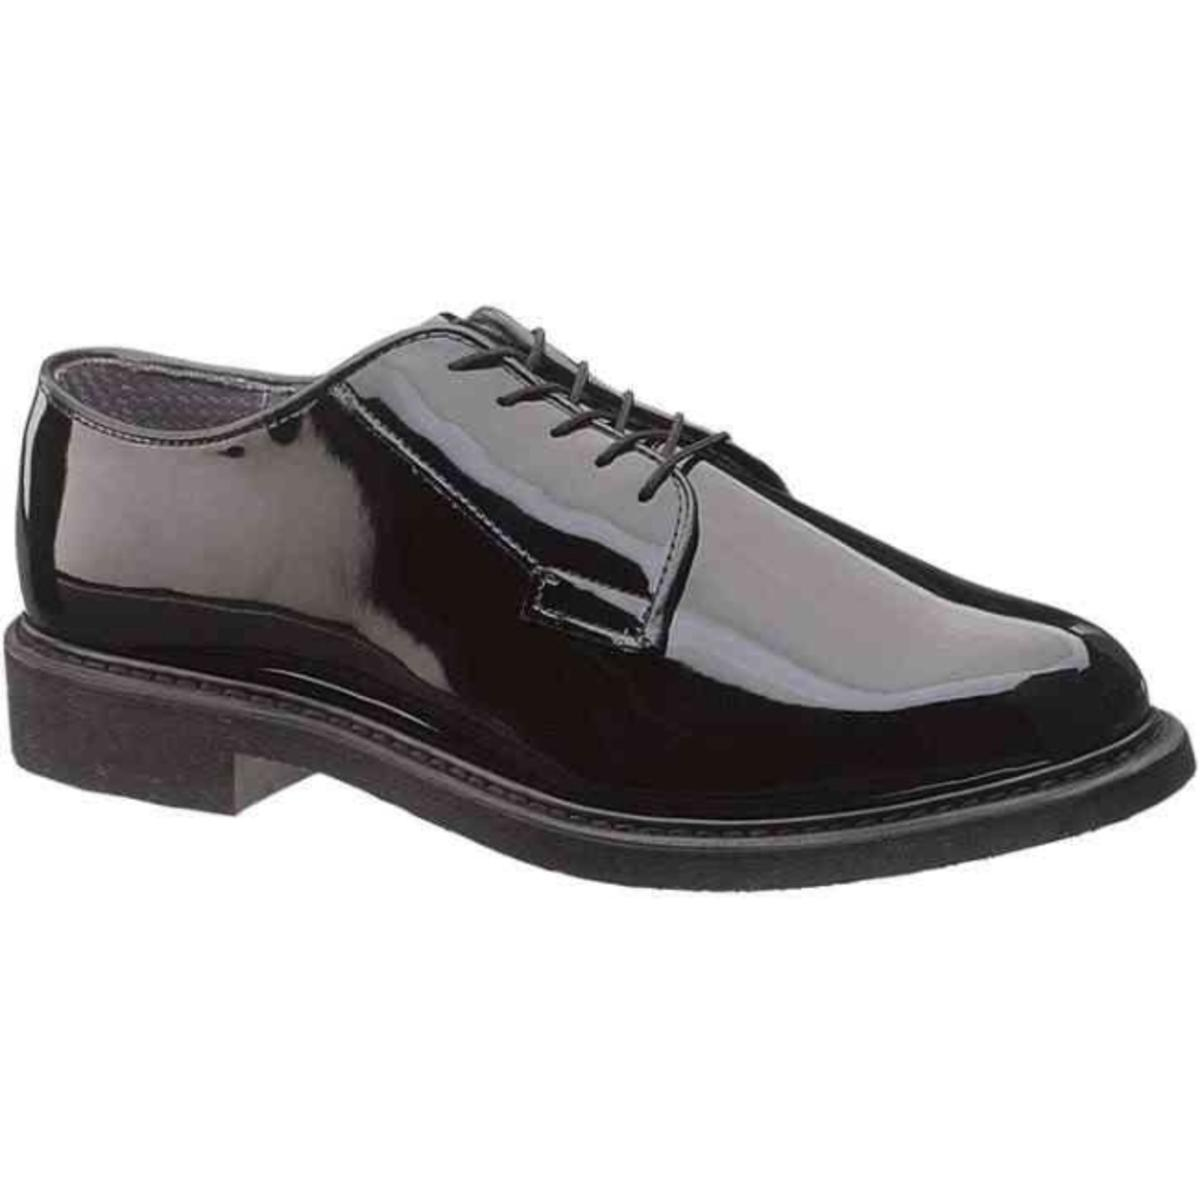 Bates High Gloss Oxford Lites Duty Dress Shoe, Black, Mod...